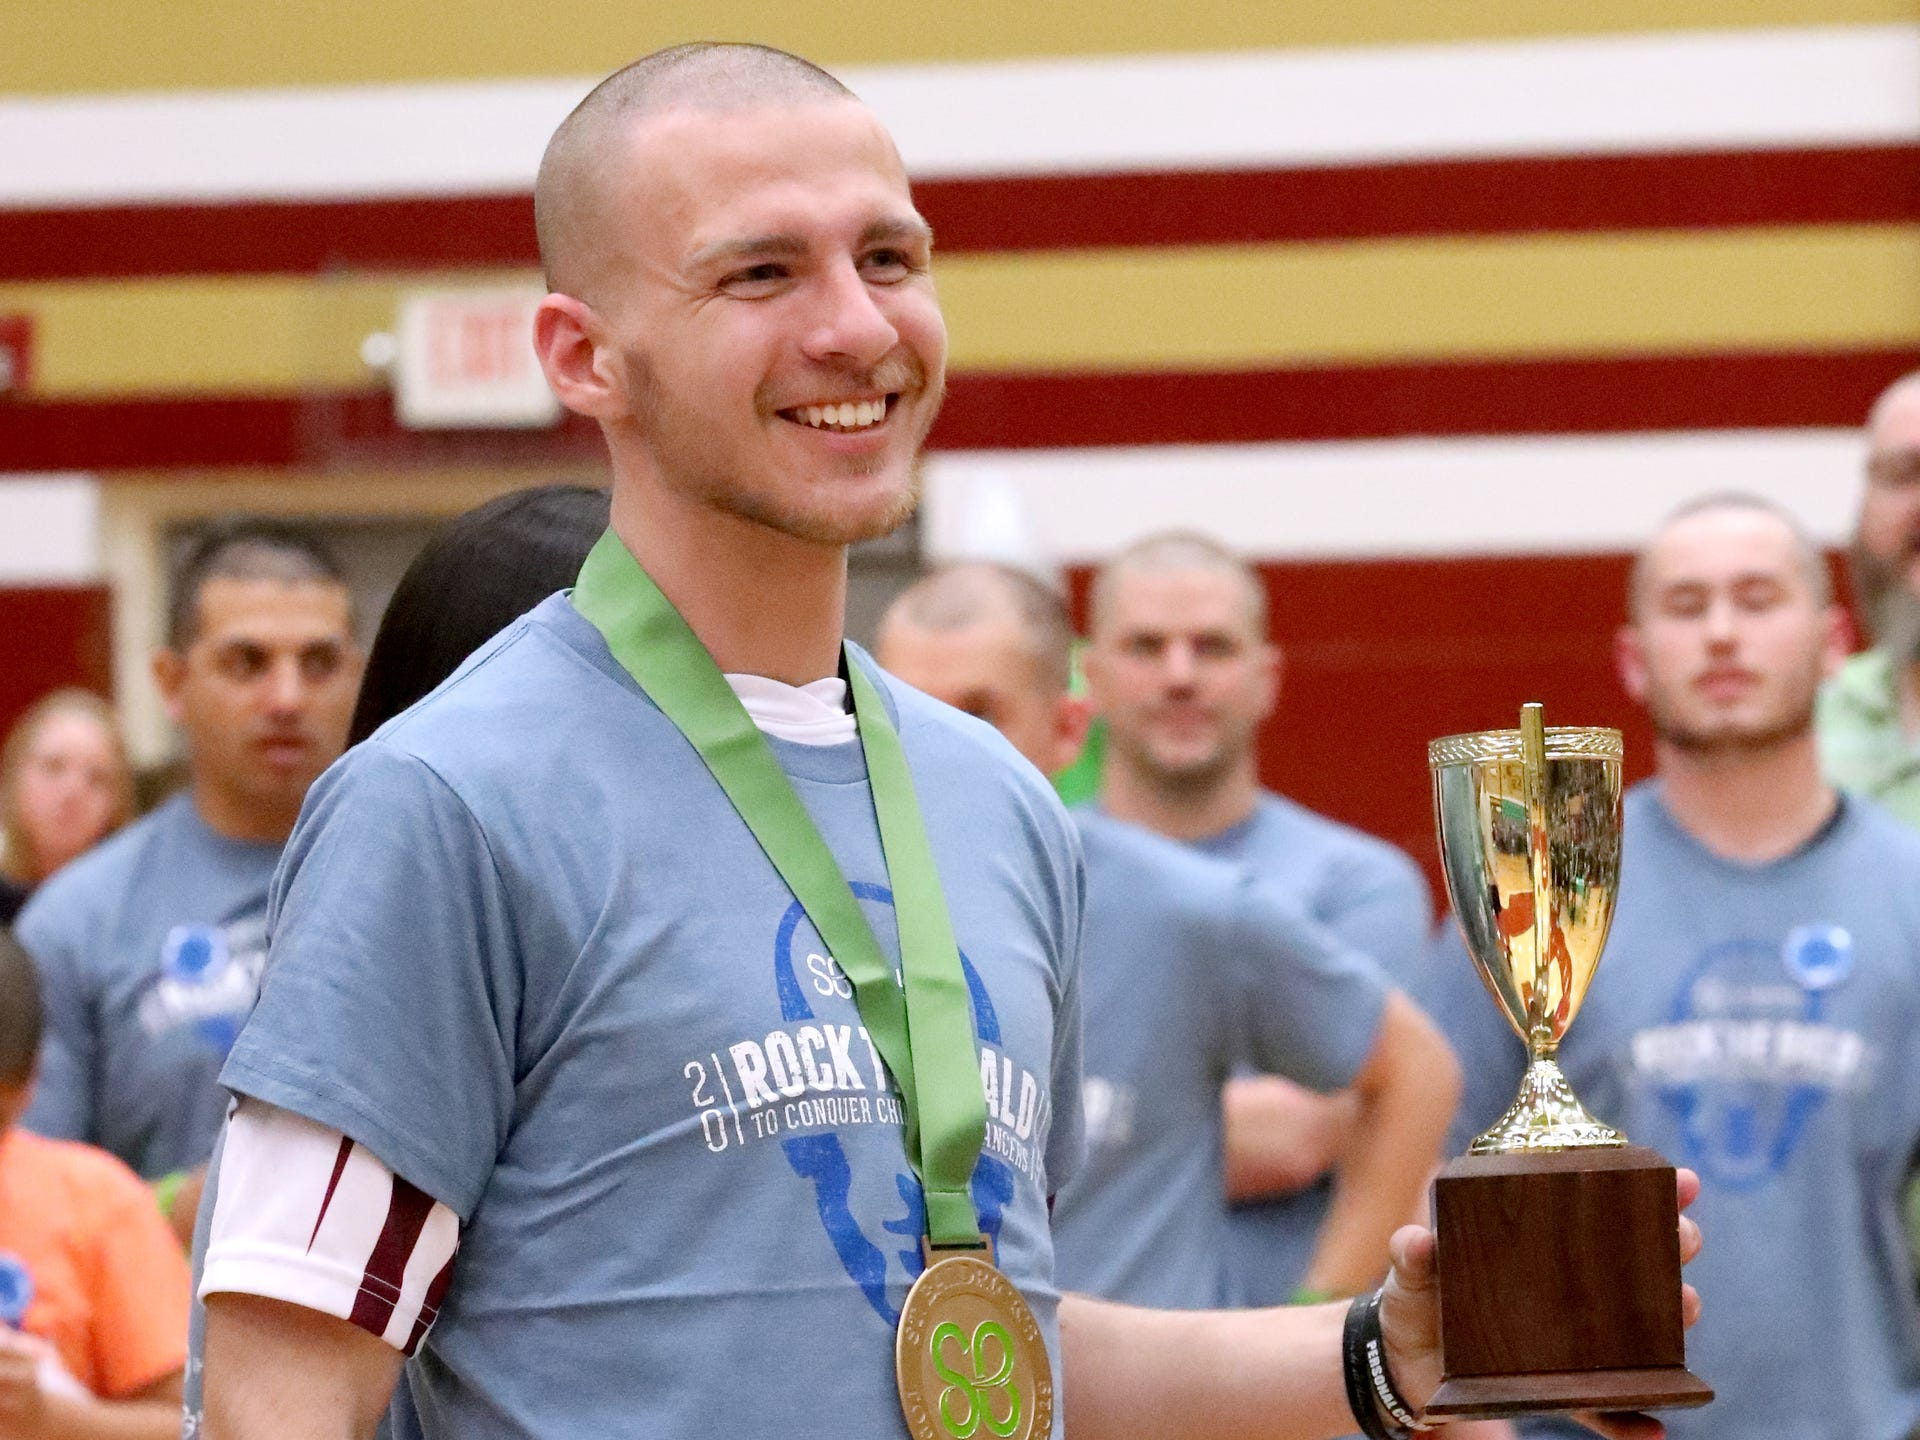 Caleb Shew raised the most money during the Riverdale High School's sixth annual Brave the Shave fundraiser to benefit St. Baldrick's Foundation on Thursday, March 21, 2019. The organization raises funds and awareness for childhood cancer.